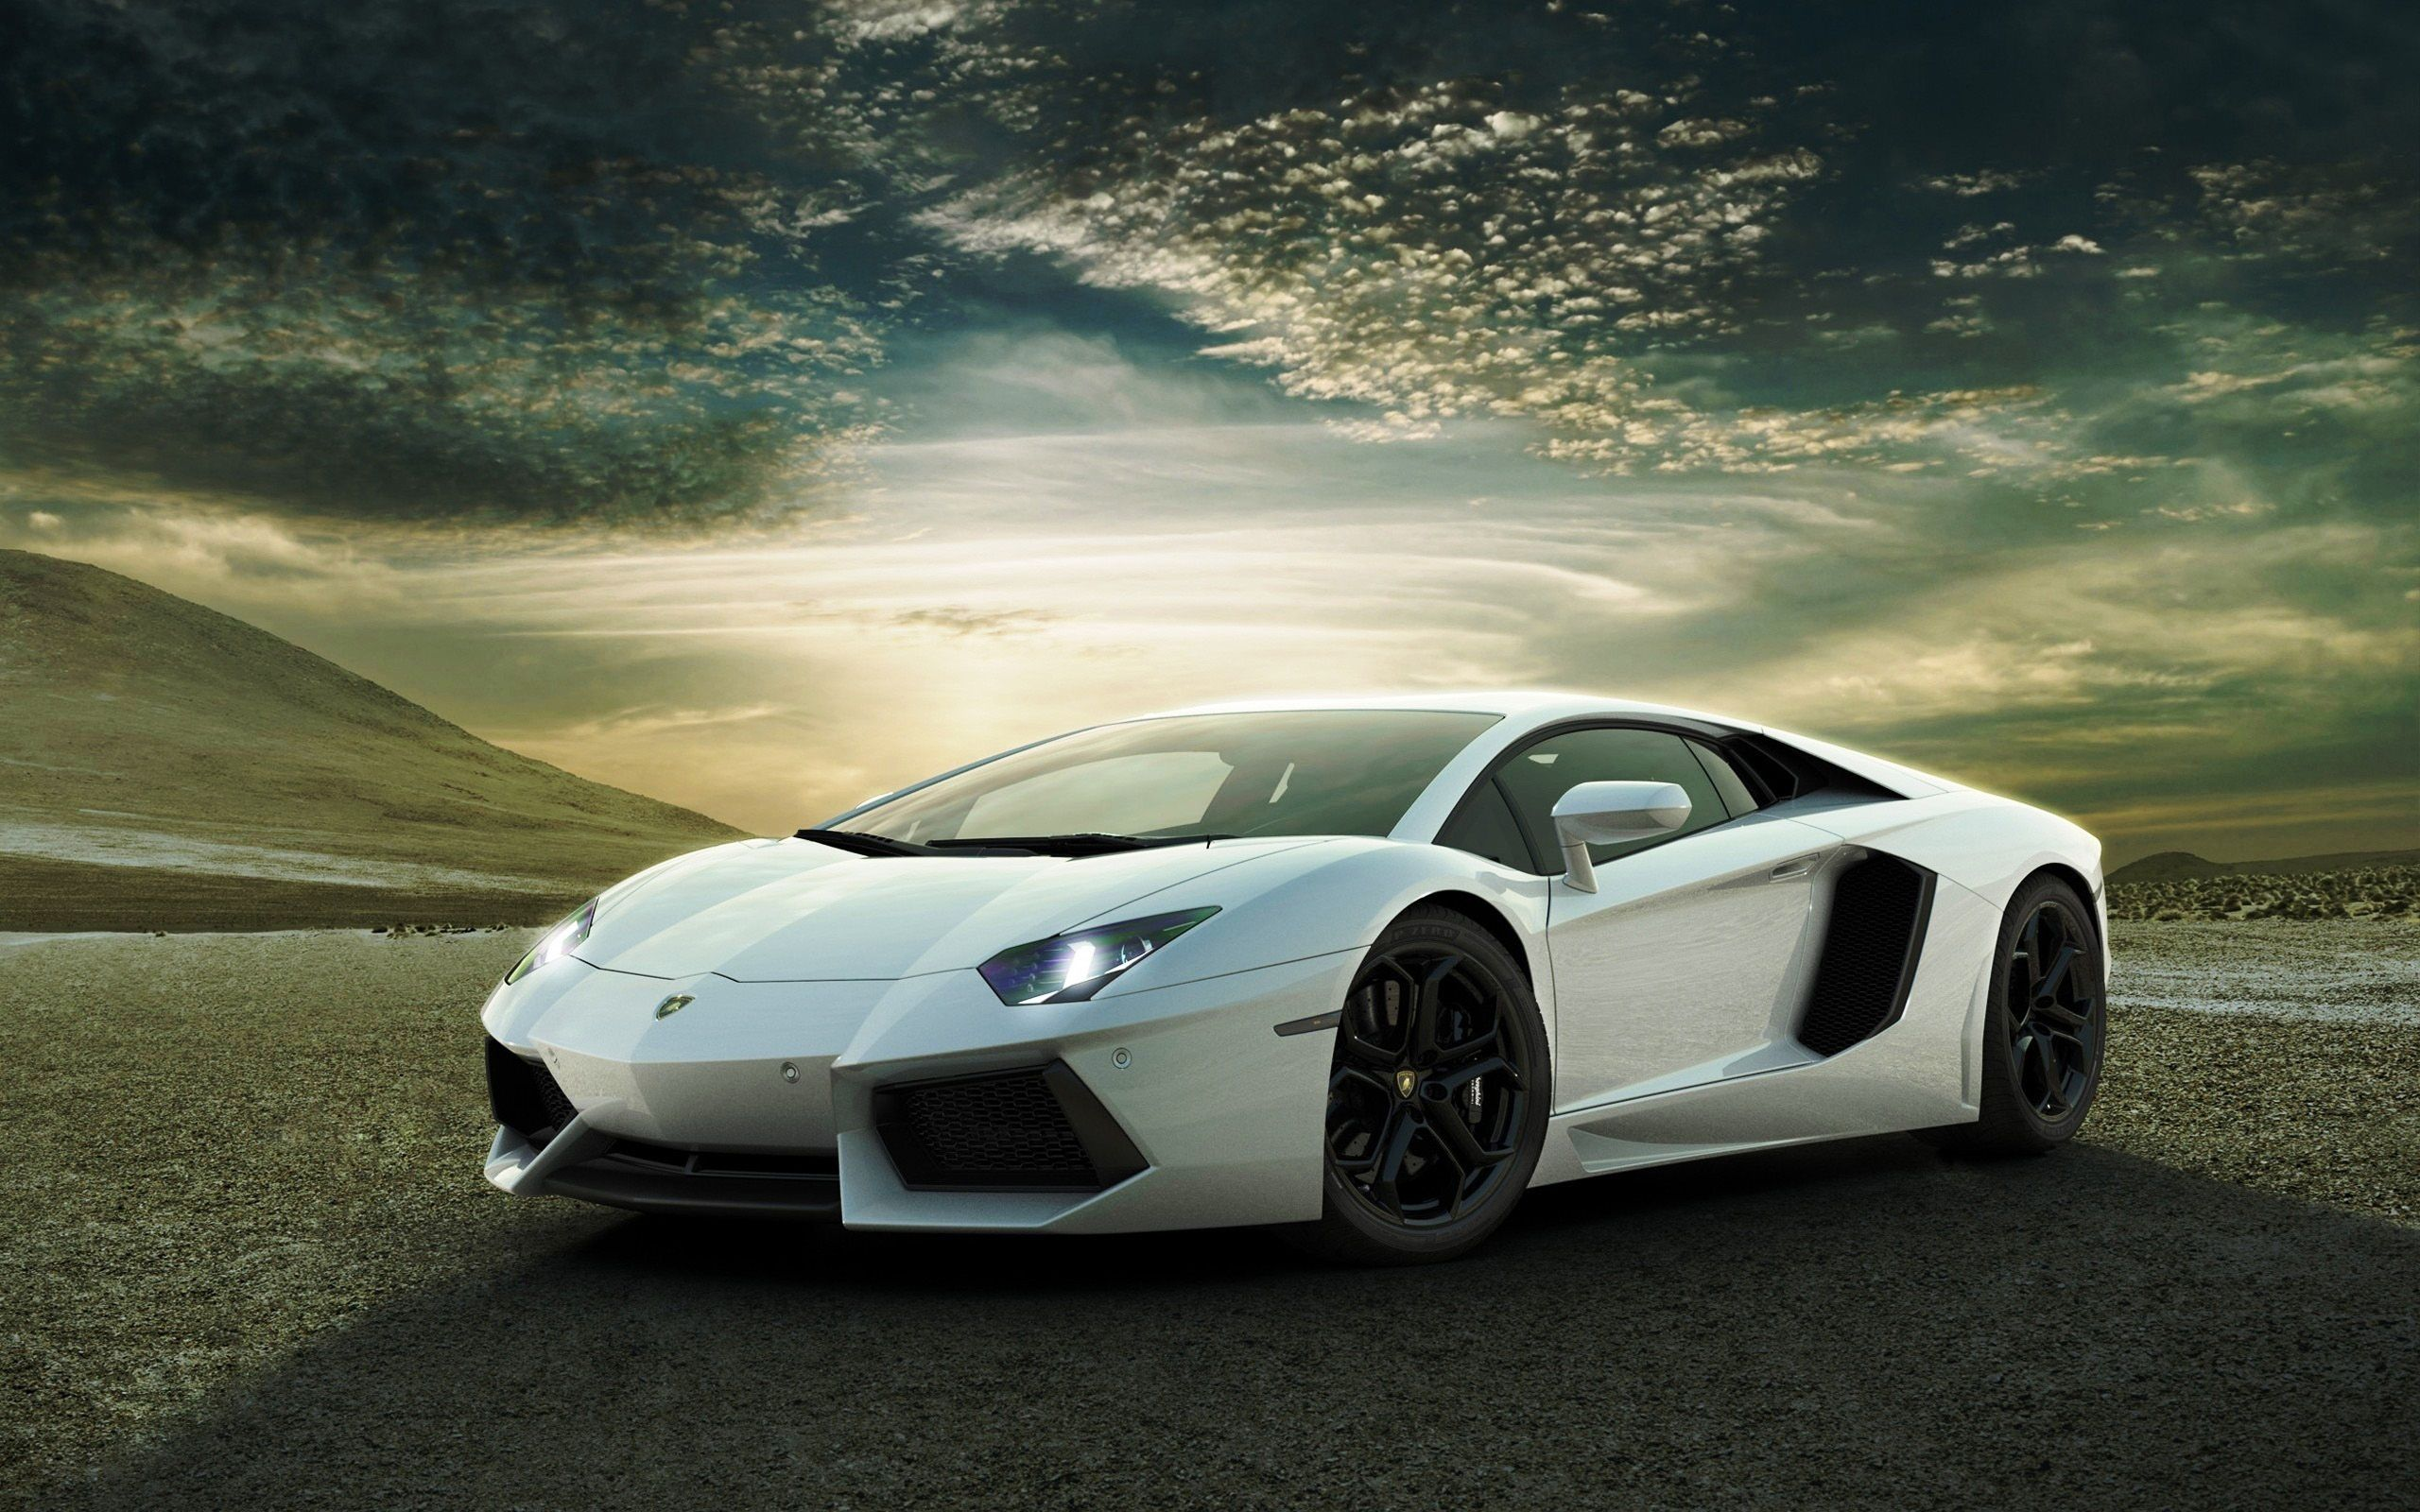 photoshoot exotic toronto for lamborghini shoot your service prom contest photo wedding car rental